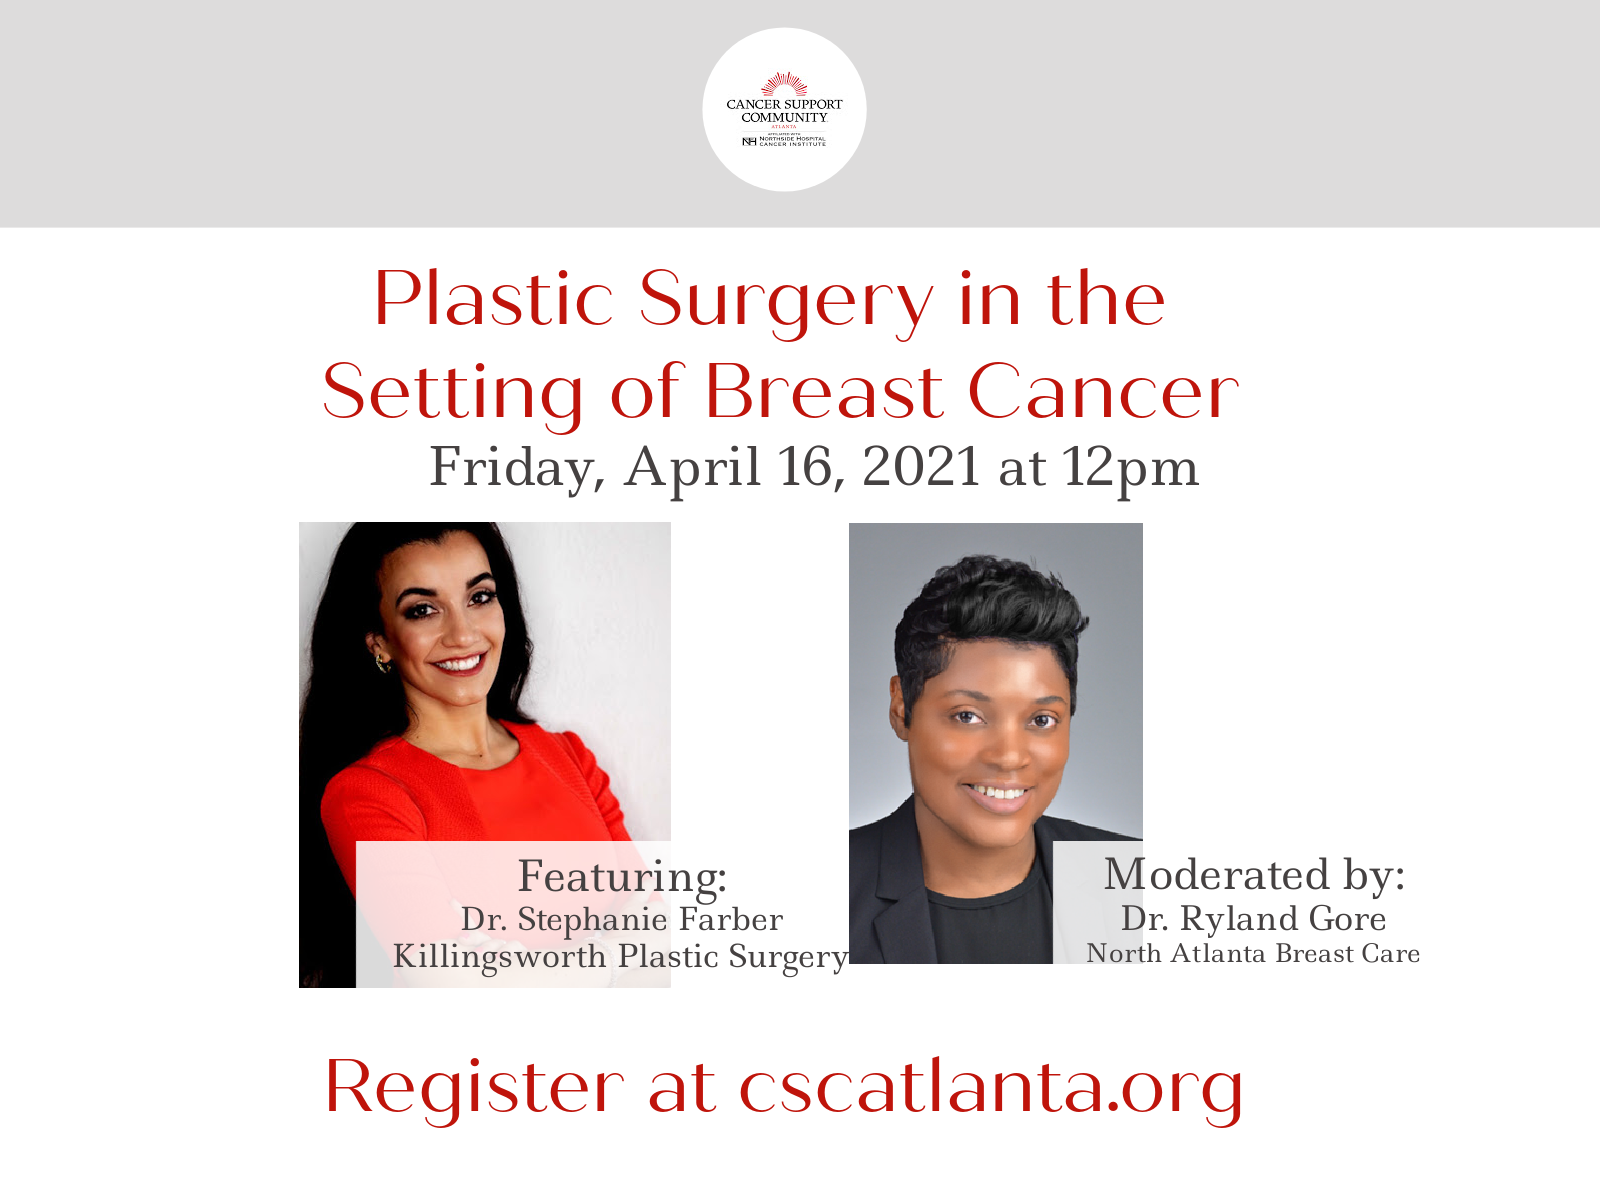 Live Virtual Event - Plastic Surgery in the Setting of Breast Cancer